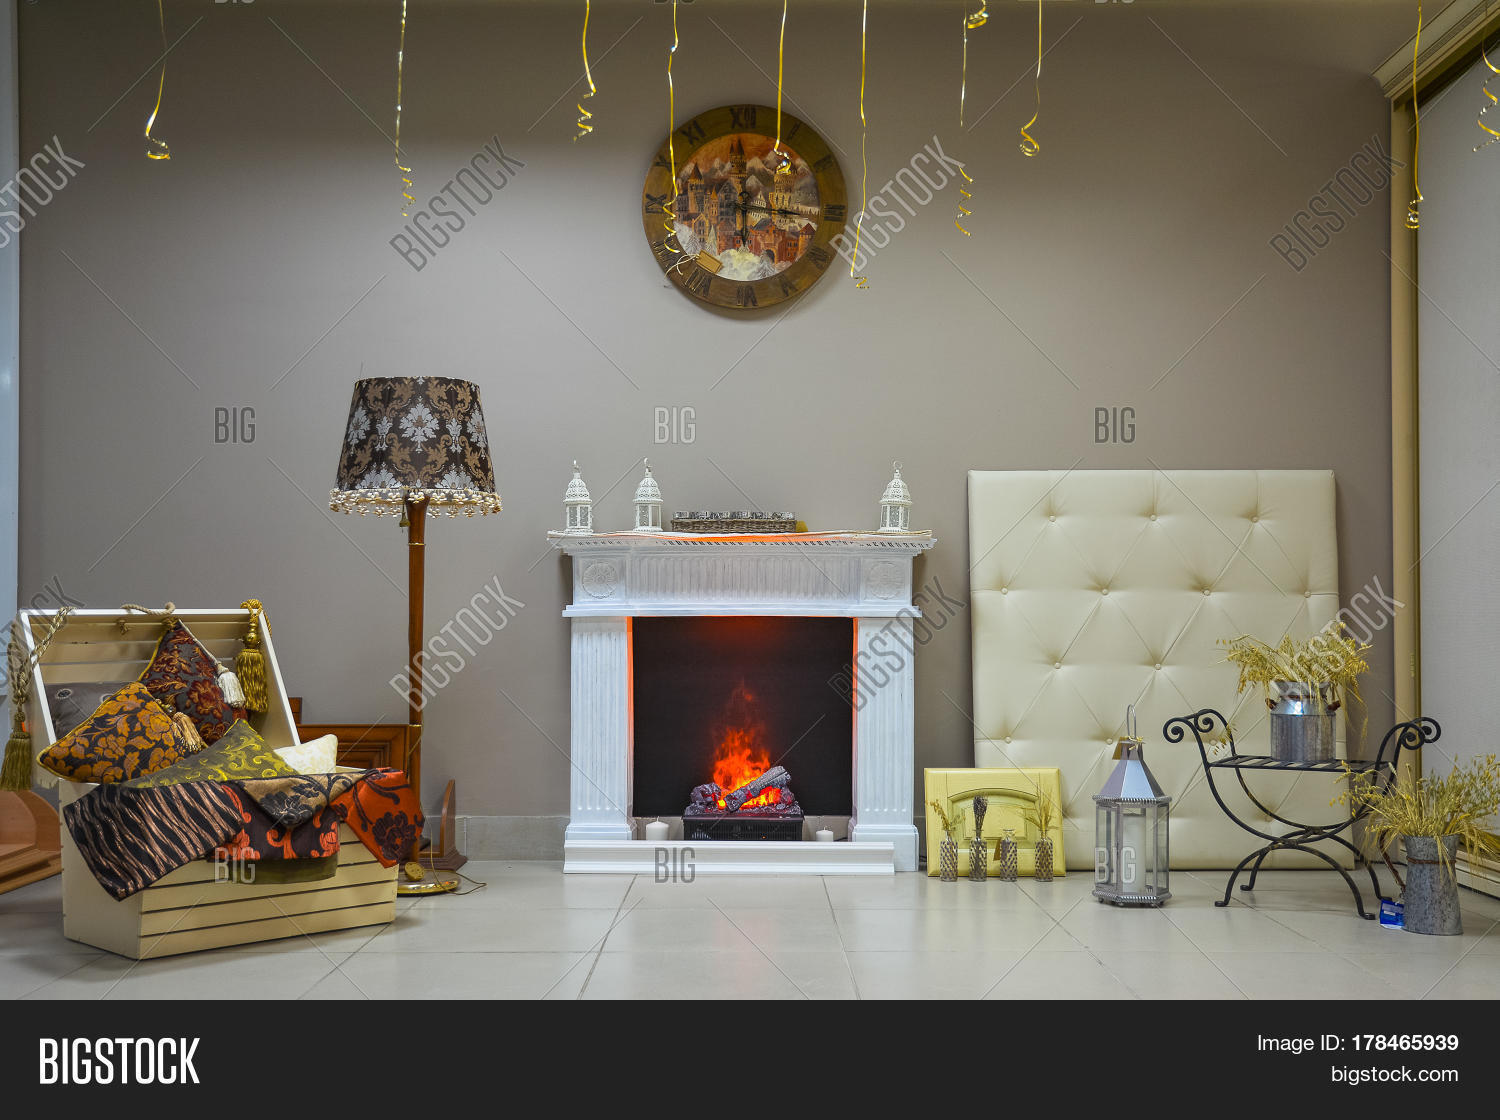 Sample Items For The Living Room Decor Stock Photo